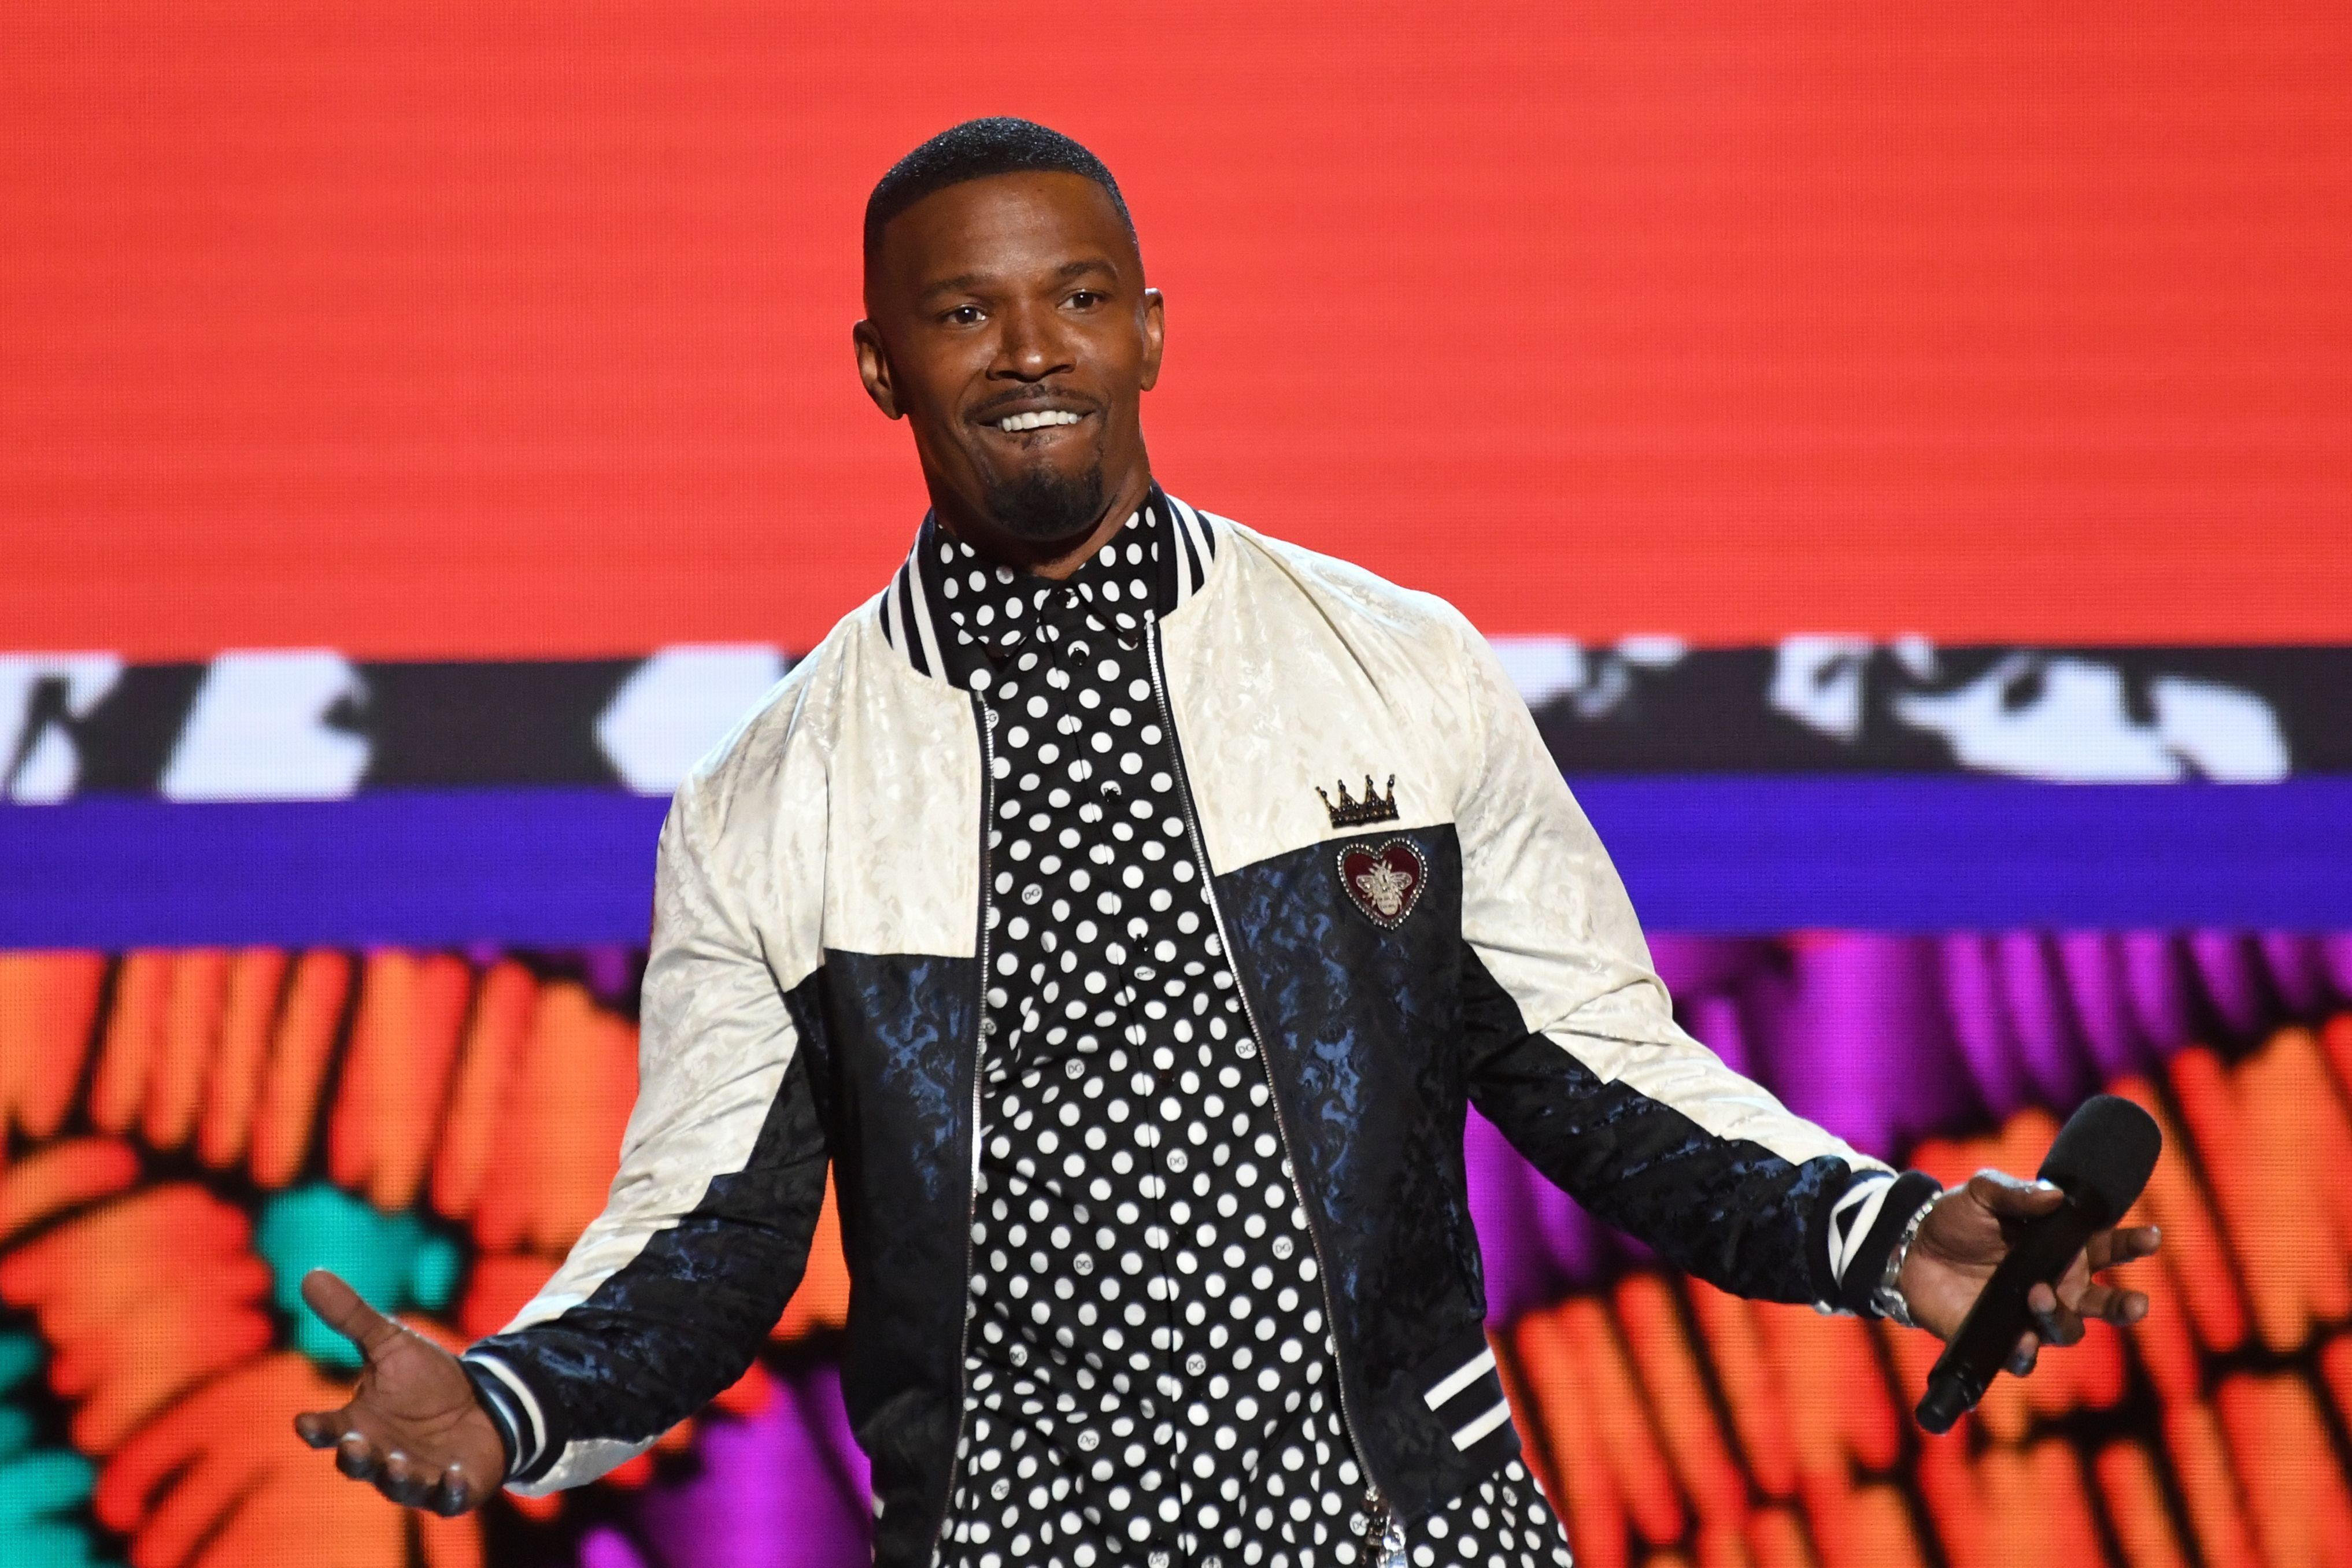 Jamie Foxx hosts the BET Awards at Microsoft Theatre in Los Angeles, California, on June 24, 2018. (Photo by Valerie MACON / AFP)        (Photo credit should read VALERIE MACON/AFP/Getty Images)